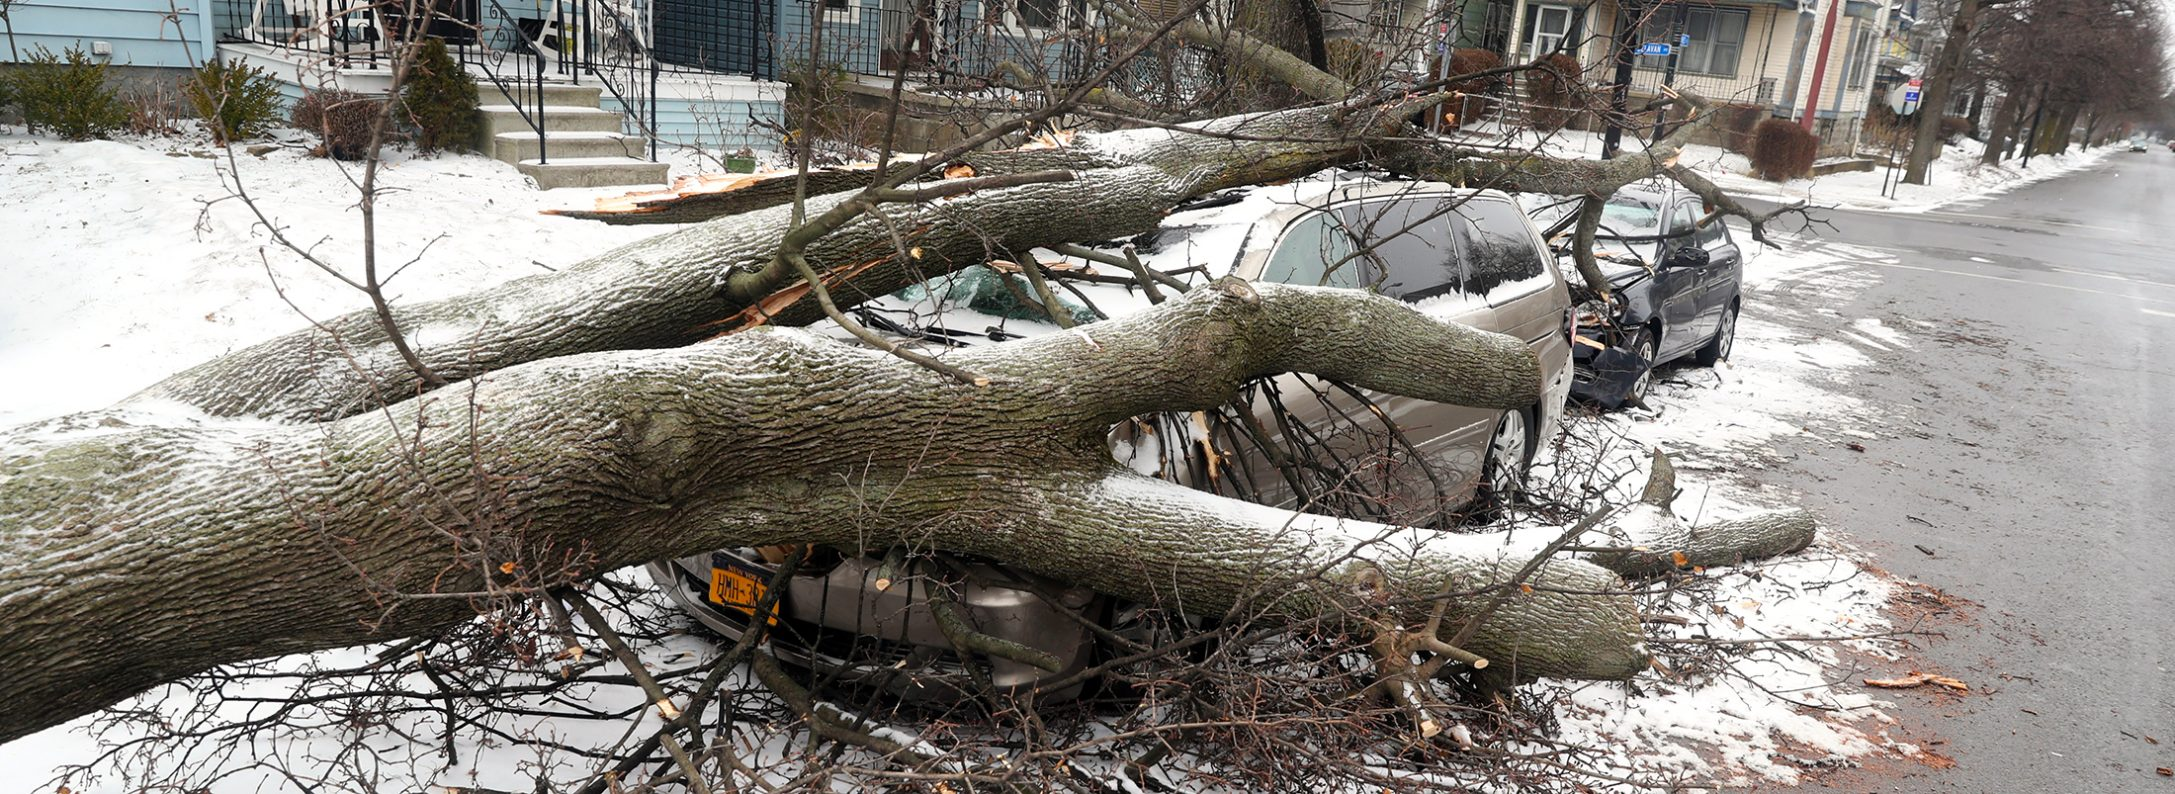 Winds took down a tree, which damaged two cars, at Baynes Street by West Delavan Avenue in Buffalo.   (John Hickey/News file photo)